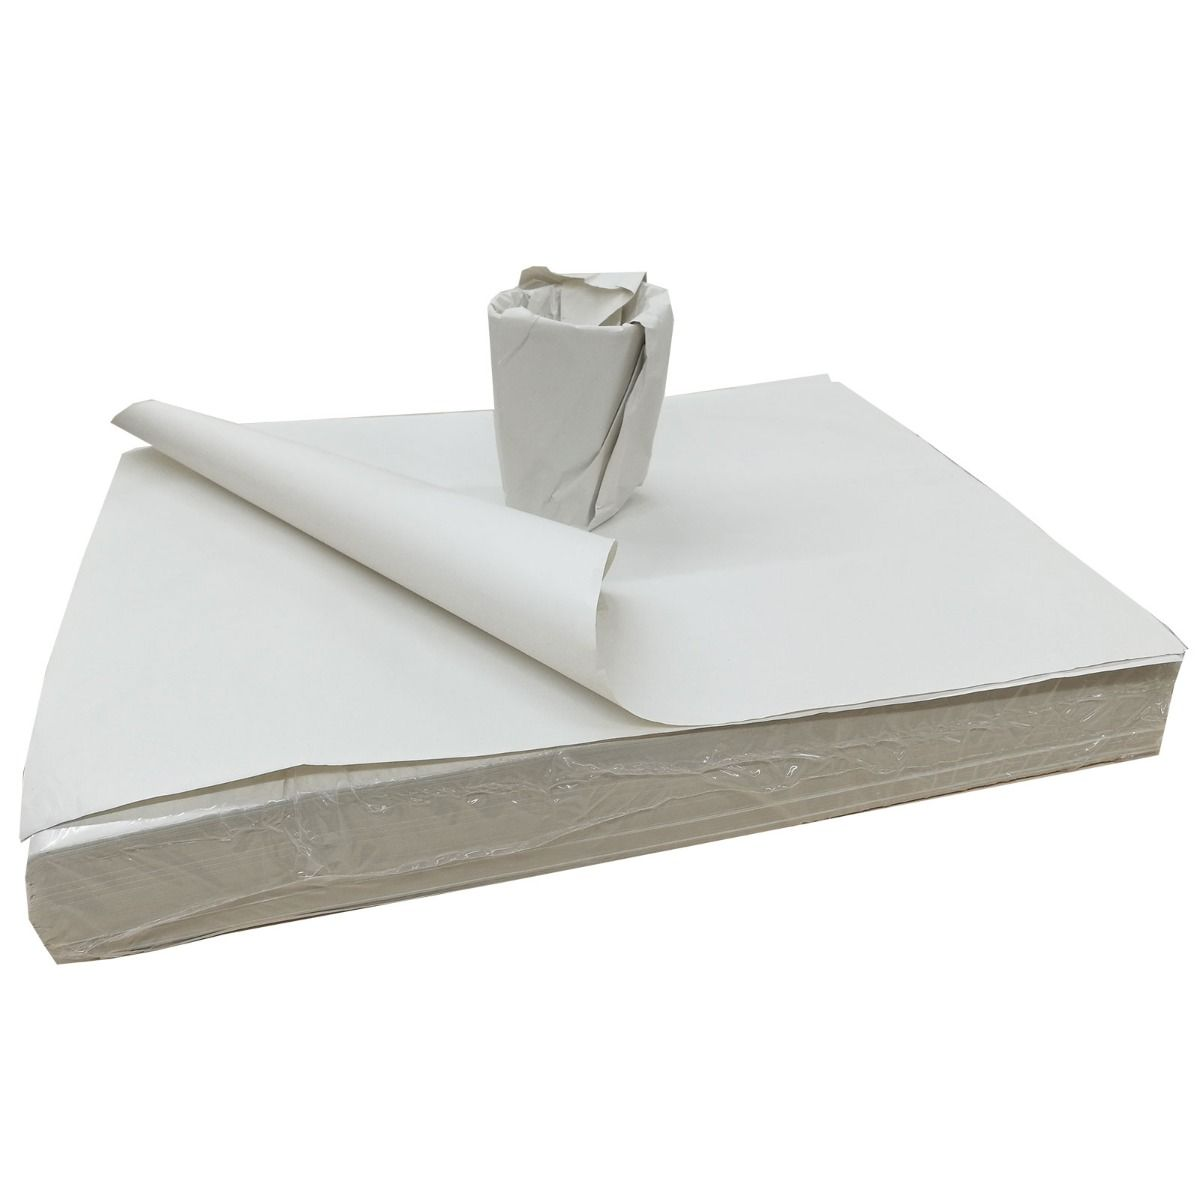 PAPER SHEETS